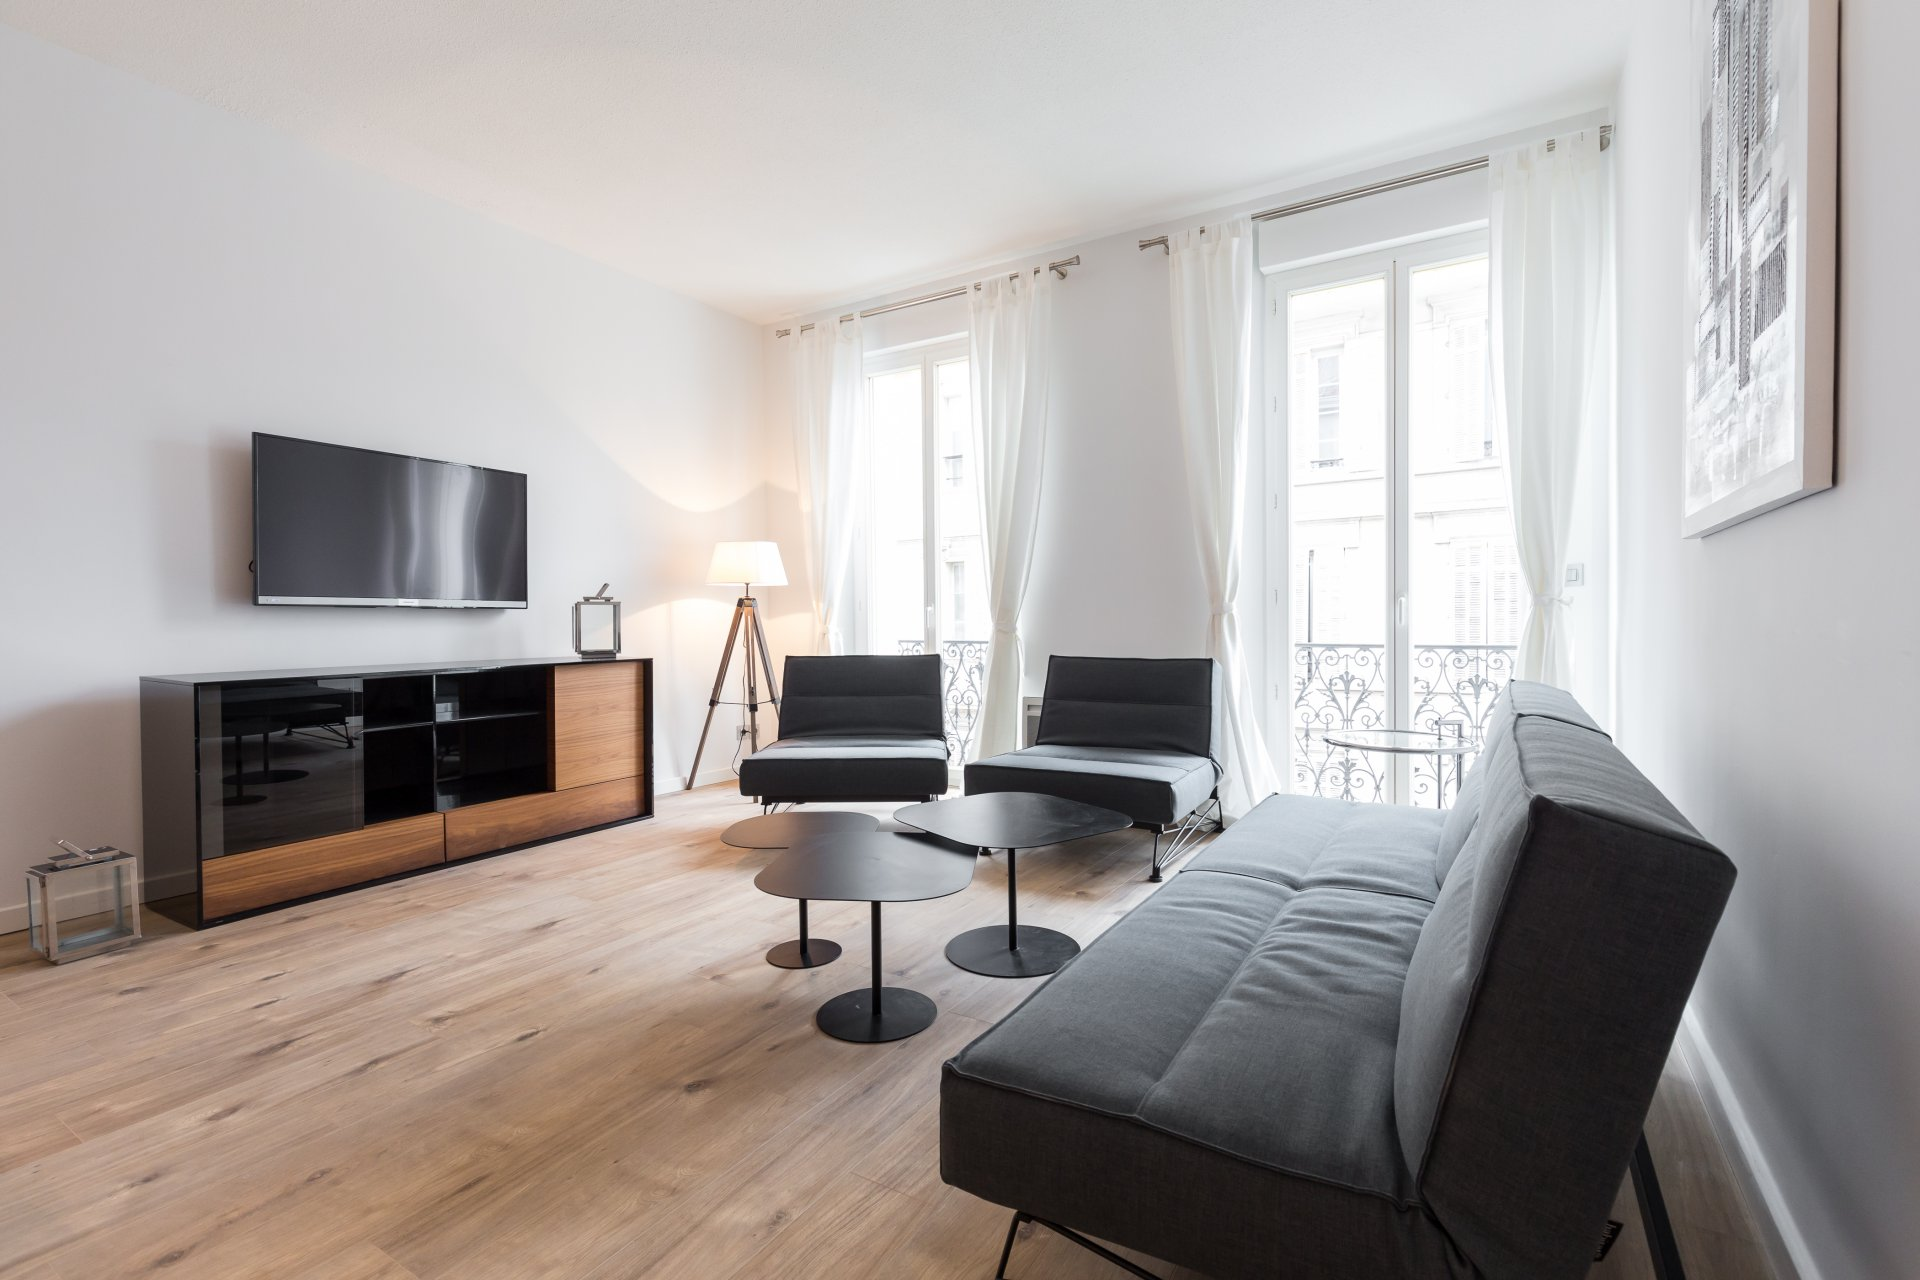 Rental film festival apartment 2 bedroom close Palais and Croisette